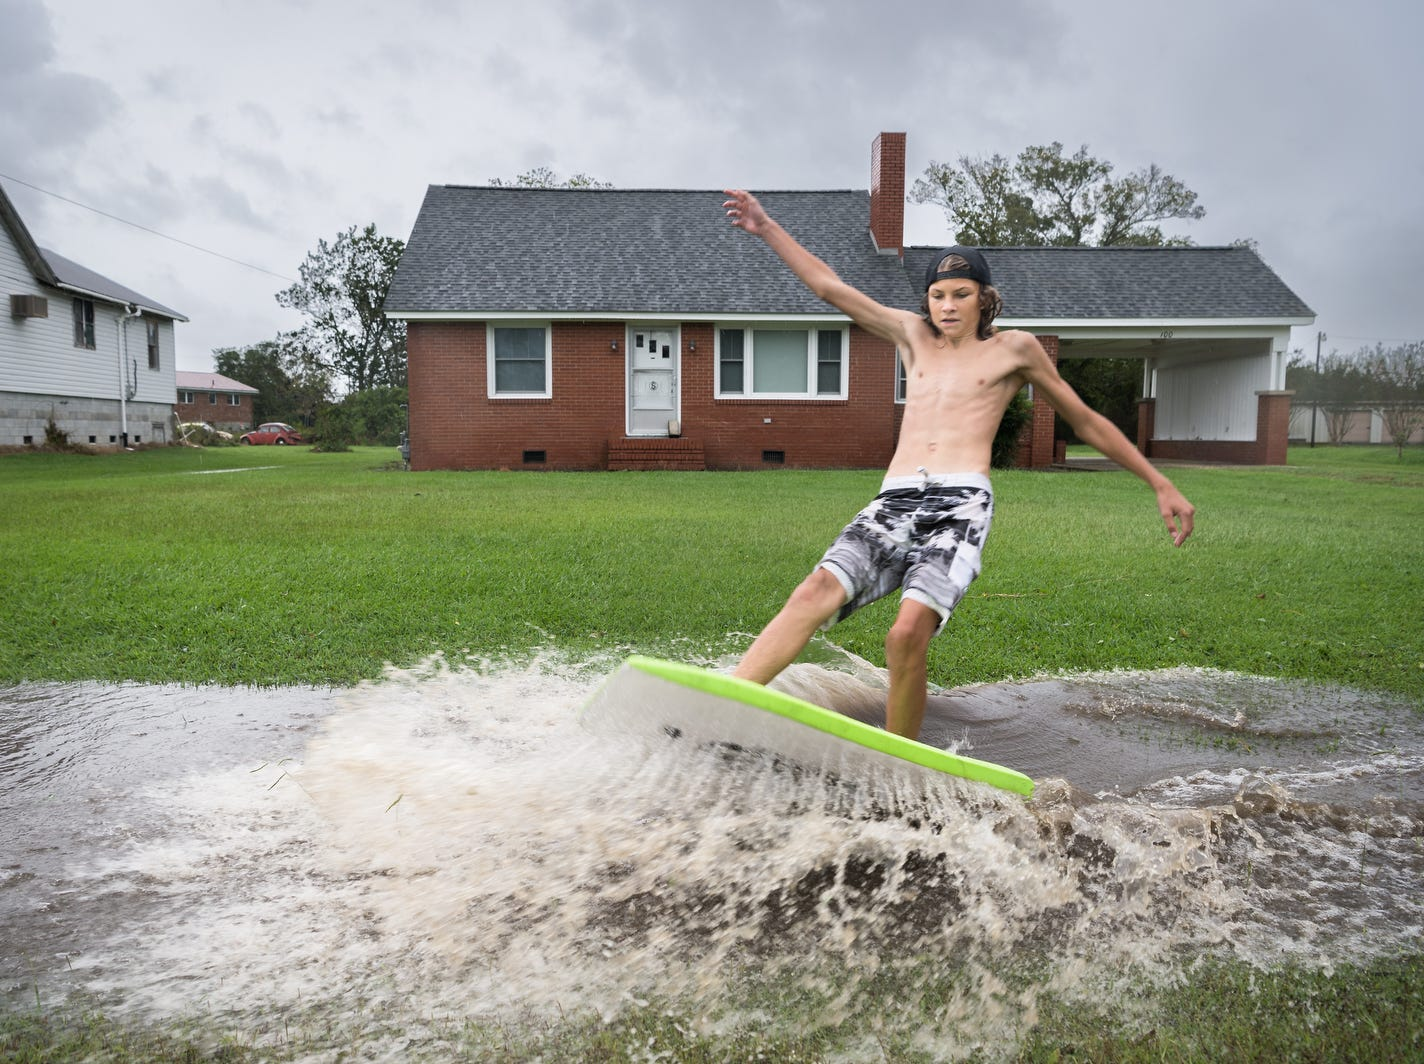 Somebody's having fun.  Deacon Etheridge, 14, surfs on a large puddle on Main Street in Swan Quarter, N.C., Friday,  after Hurricane Florence made landfall.